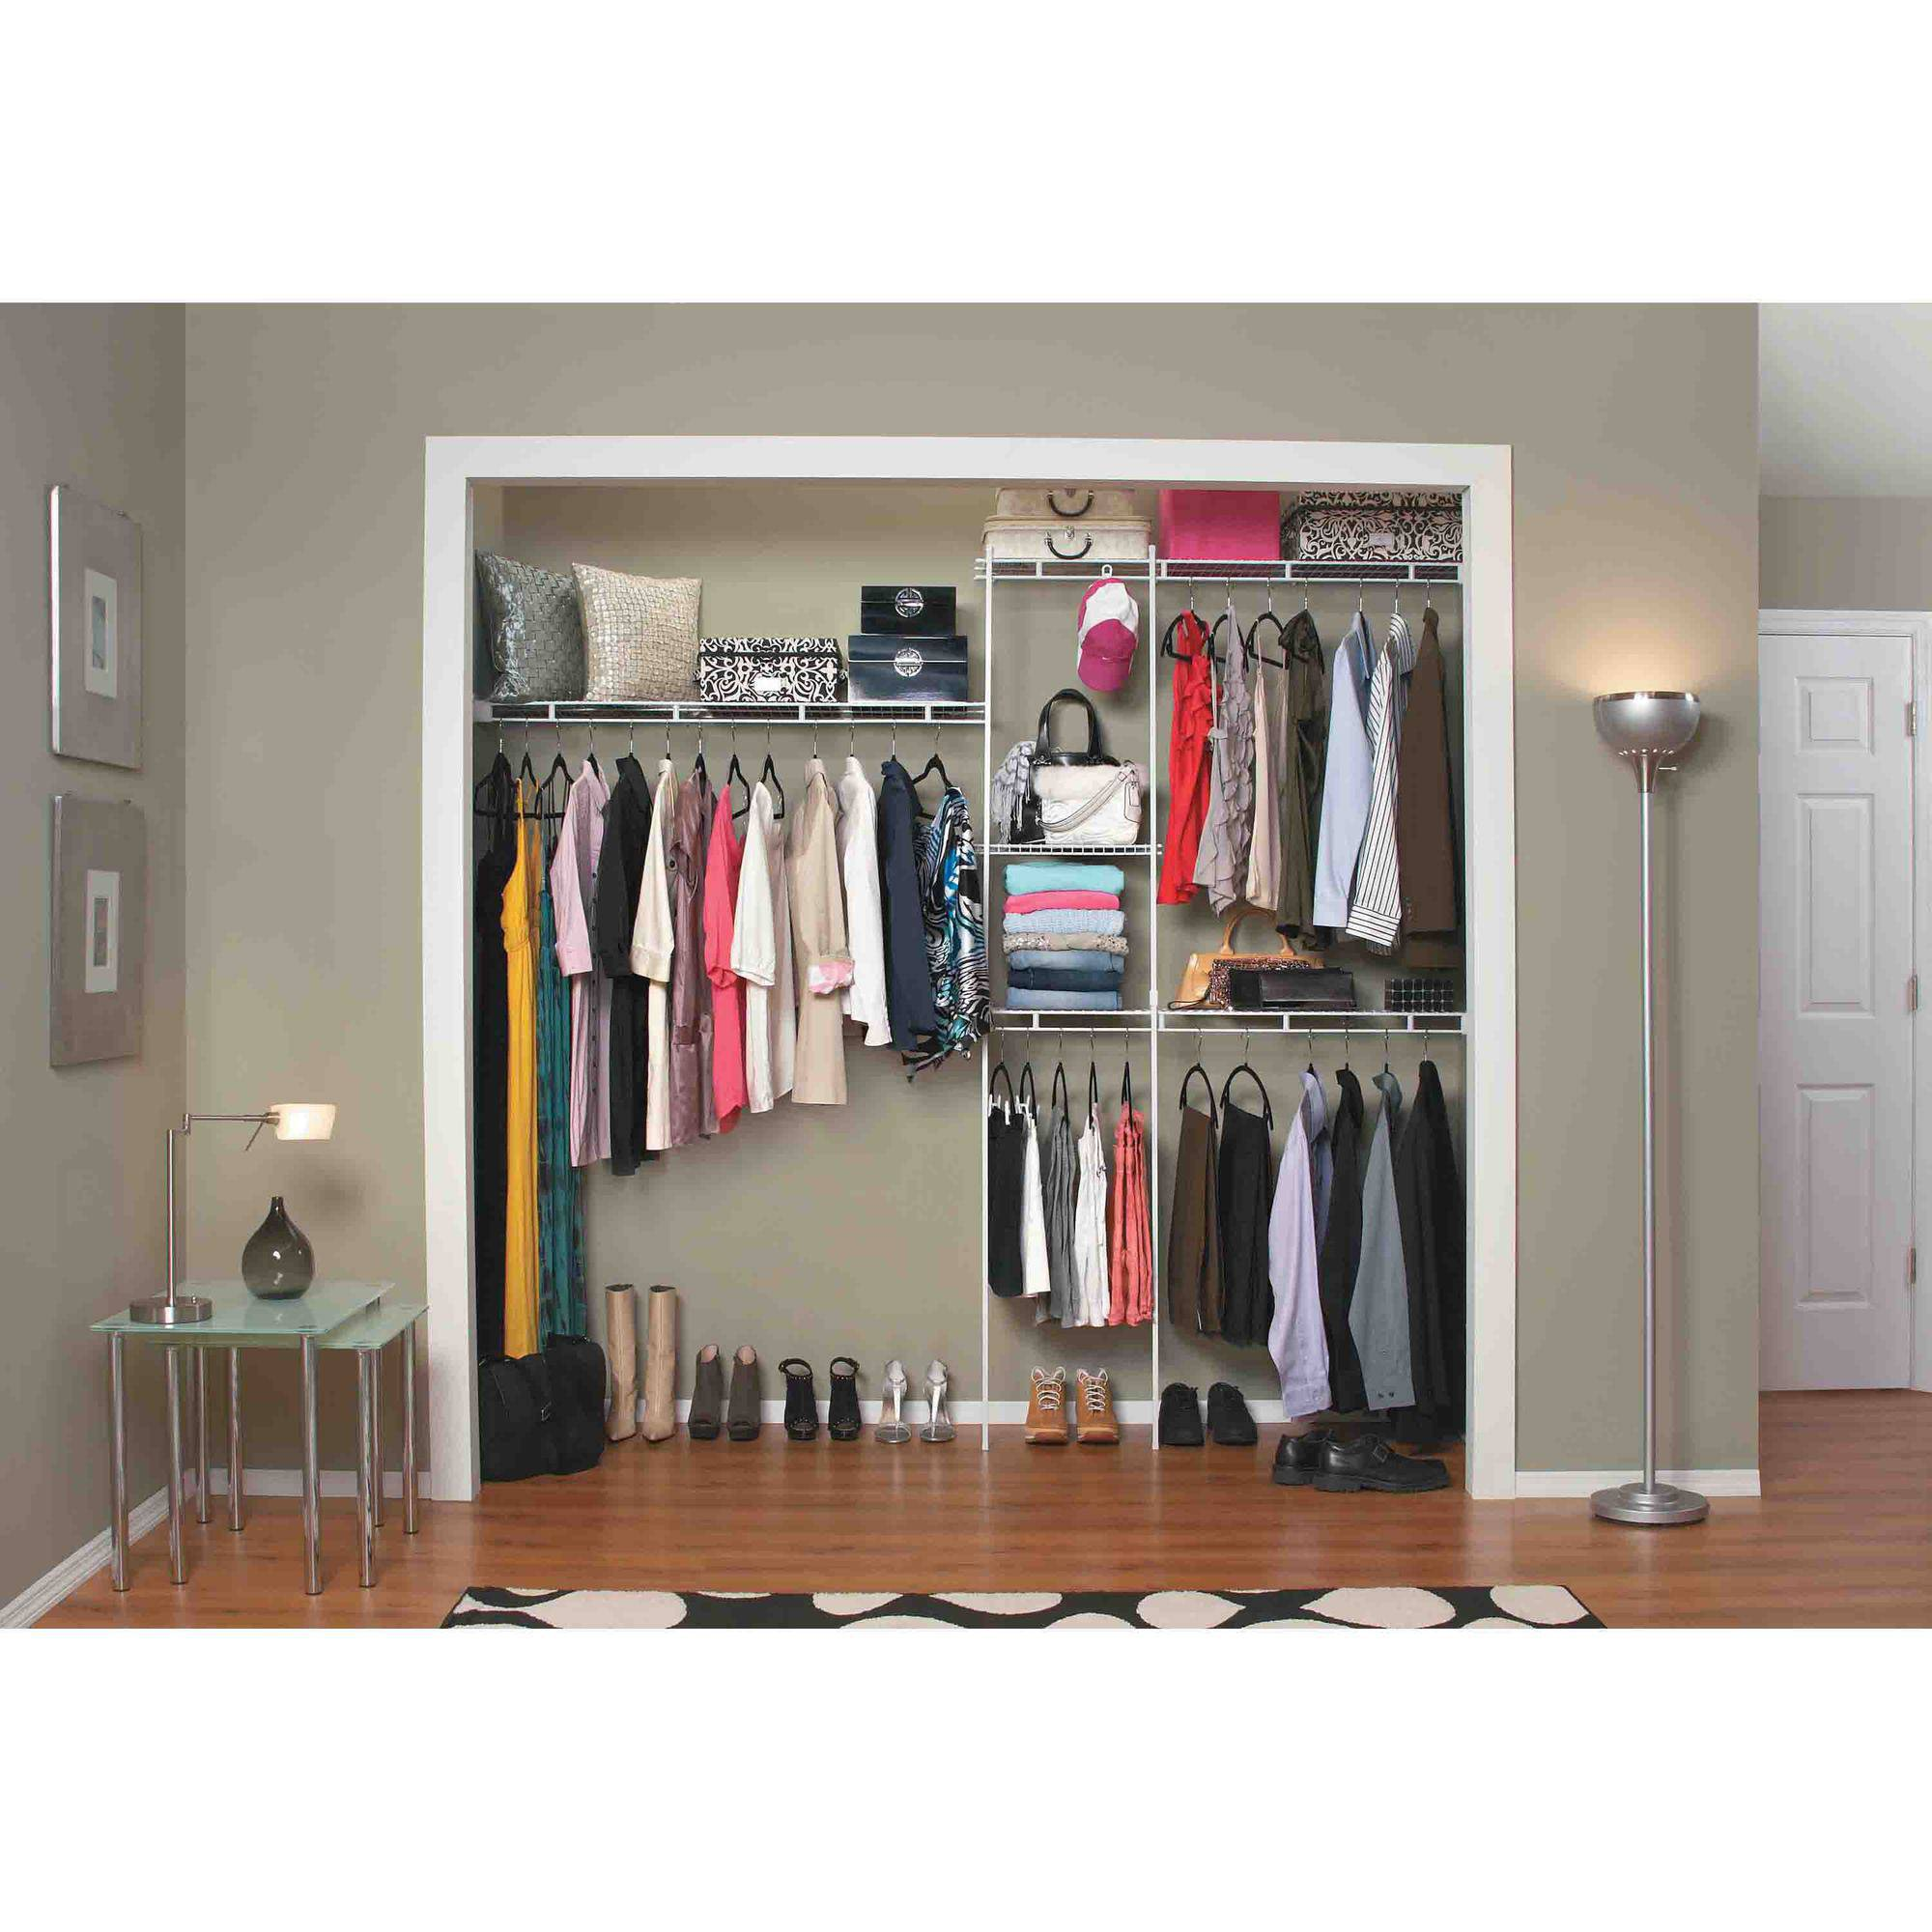 Closet Shelving Unit Shelf Wall Mount Large Kids Clothes Organizer ...